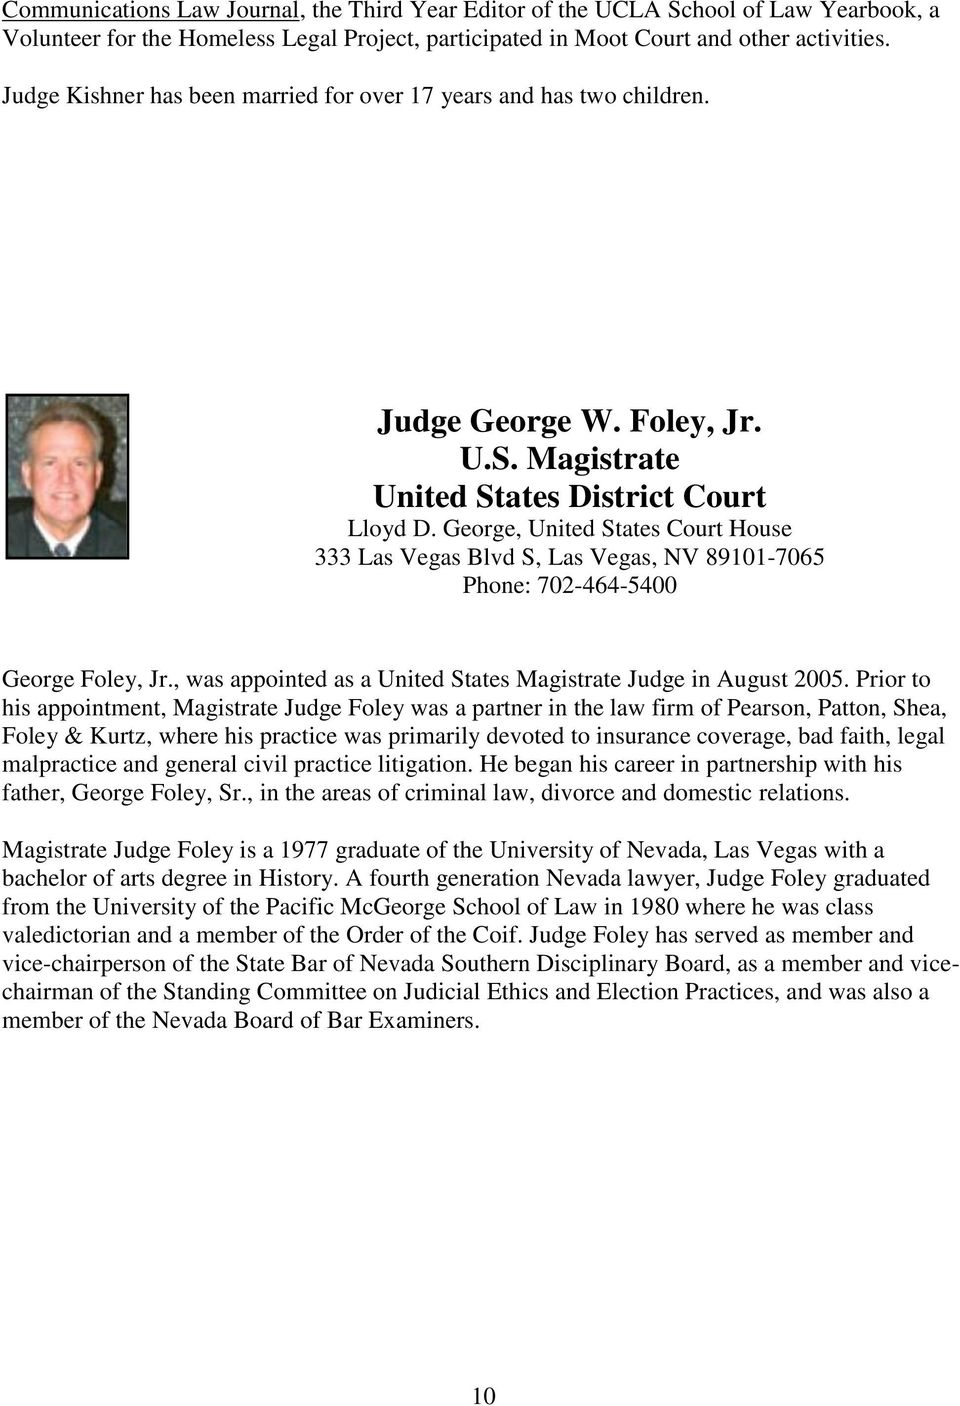 George, United States Court House 333 Las Vegas Blvd S, Las Vegas, NV 89101-7065 Phone: 702-464-5400 George Foley, Jr., was appointed as a United States Magistrate Judge in August 2005.